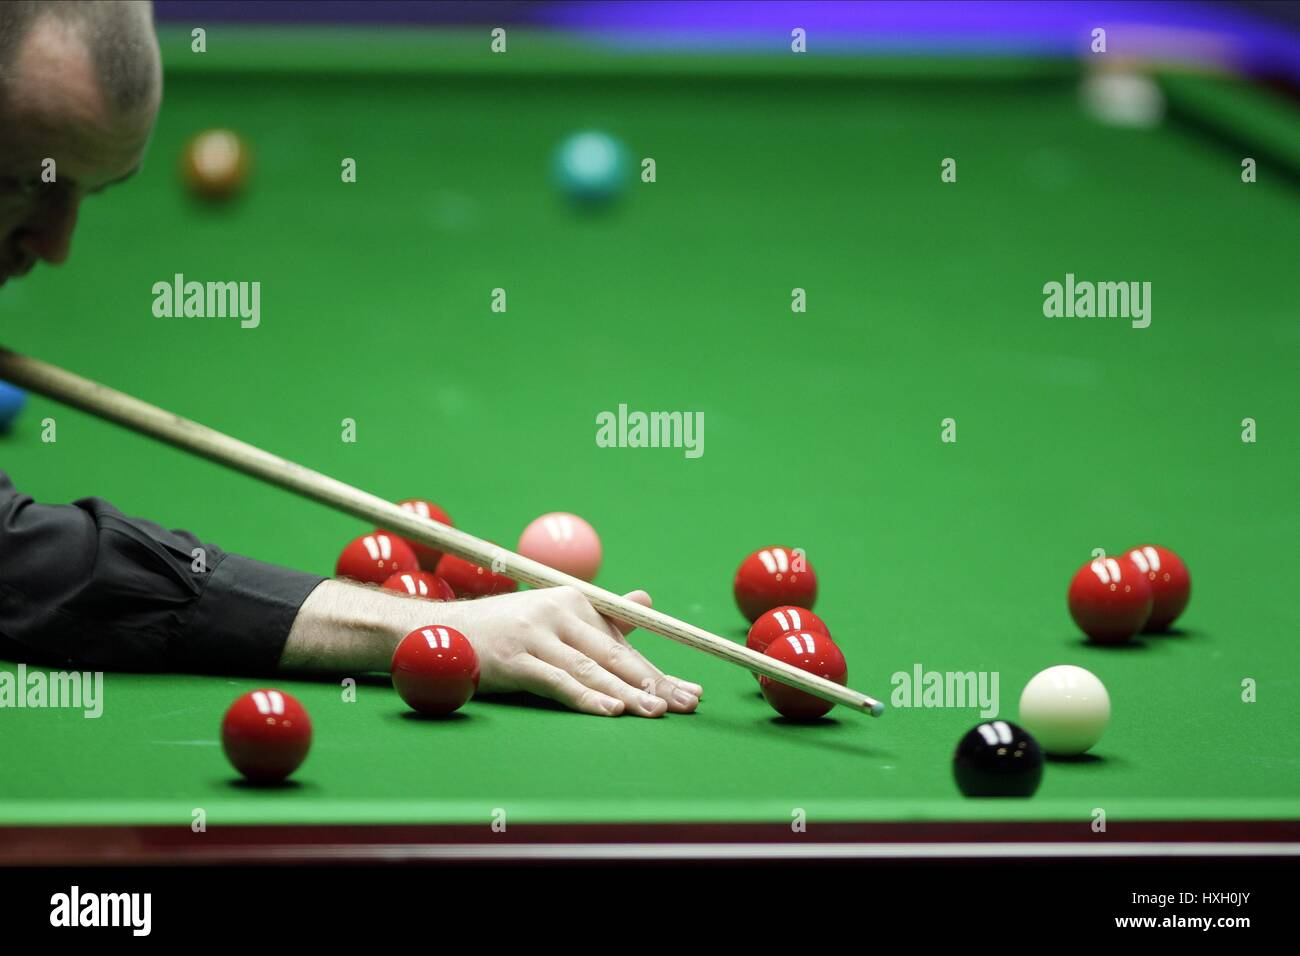 CUEING IN AMONGST THE REDS WORLD SNOOKER CHAMPIONS WORLD SNOOKER CHAMPIONSHIP THE CRUCIBLE SHEFFIELD ENGLAND 16 - Stock Image